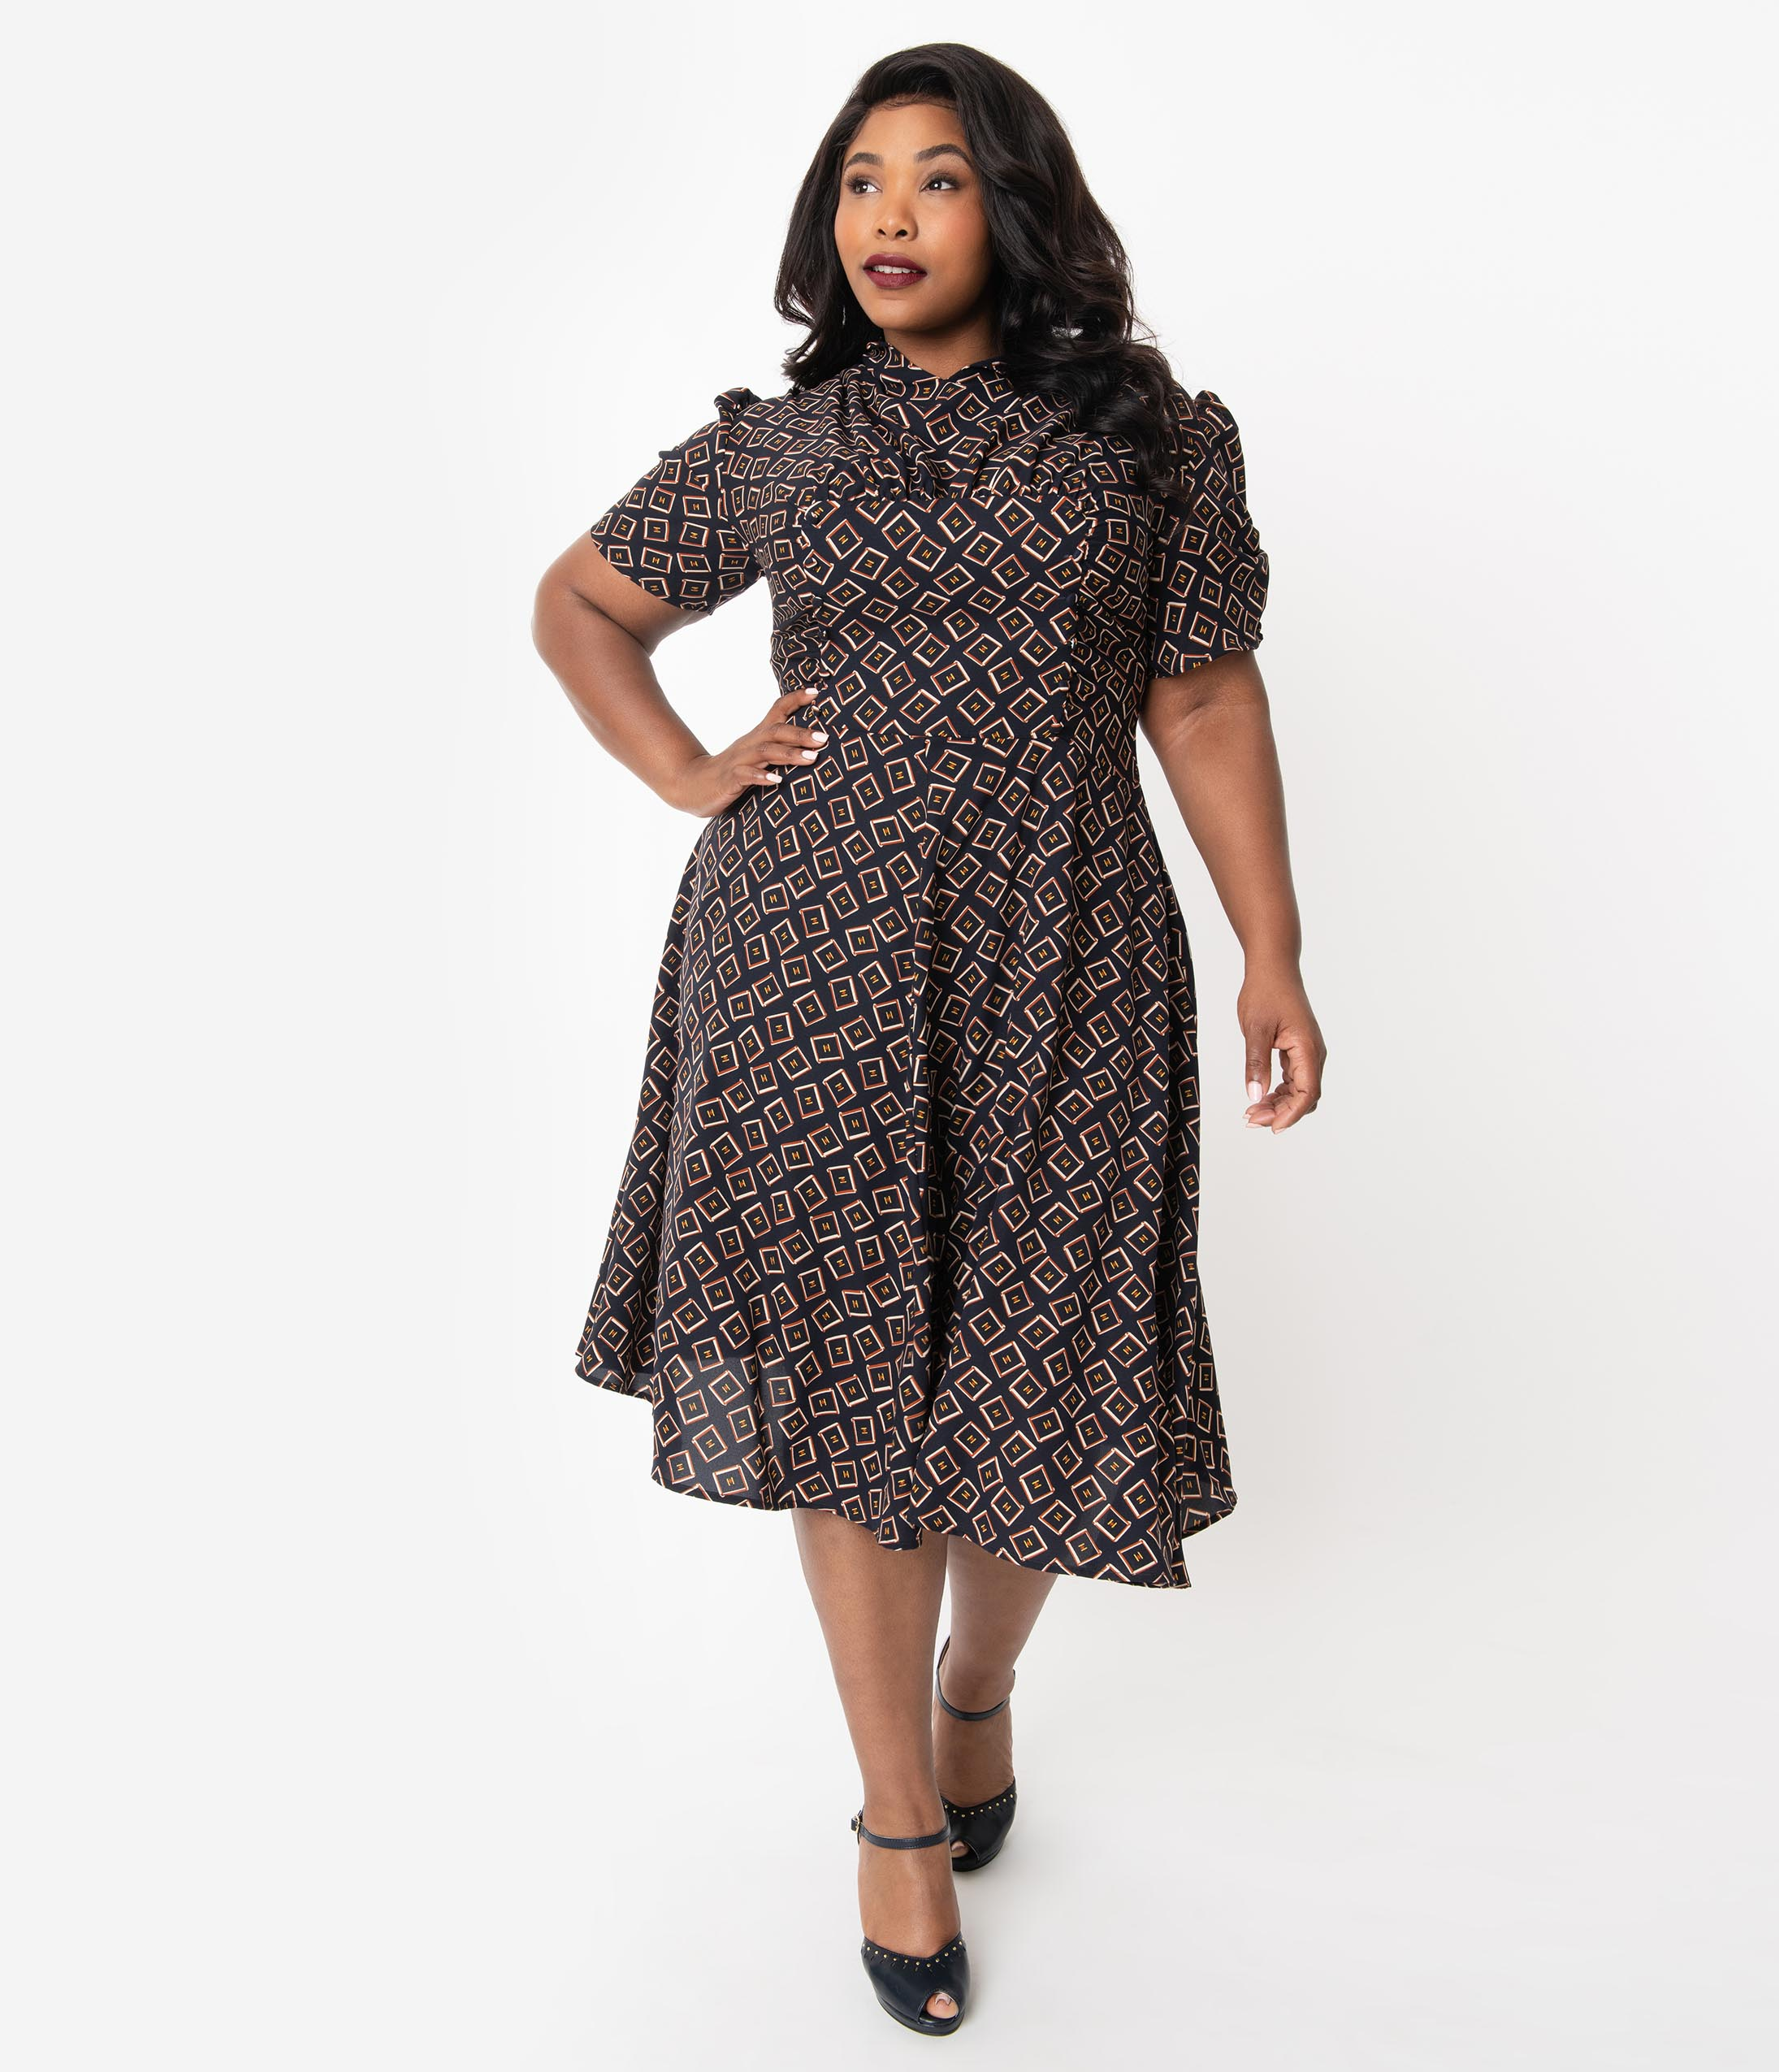 1940s Plus Size Dresses | Swing Dress, Tea Dress Unique Vintage Plus Size 1940S Style Black Box Print Camilla Midi Dress $88.00 AT vintagedancer.com